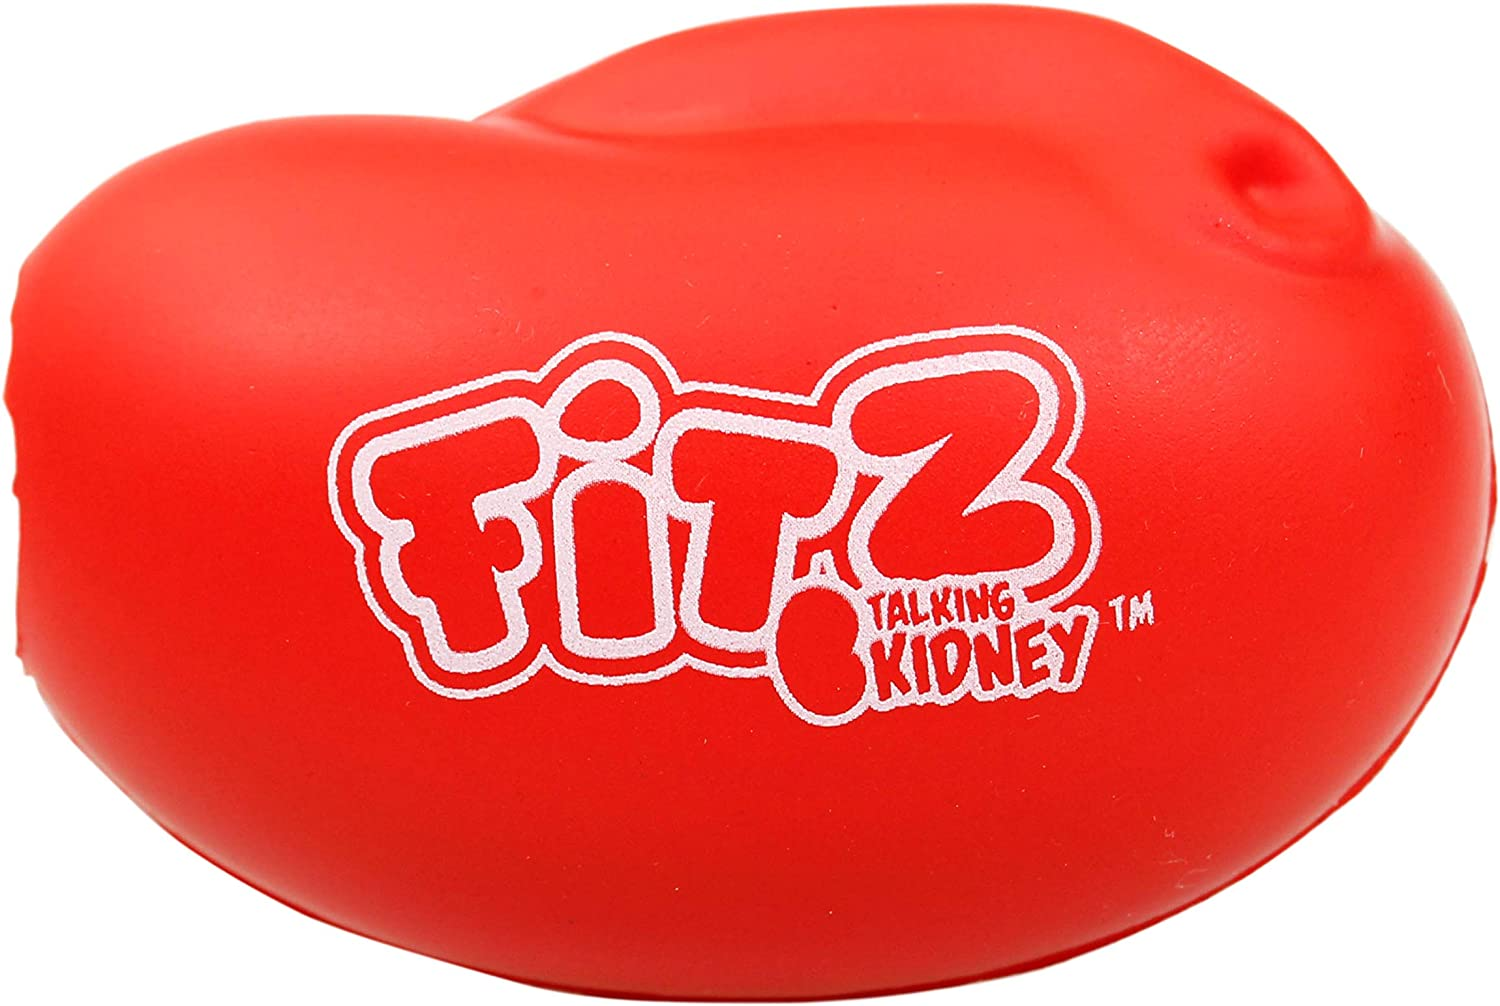 Fitz Talking Kidney Motivational Stress Ball - Encouragement and Stress Relief - Quotes - Squeeze Ball: Sports & Outdoors